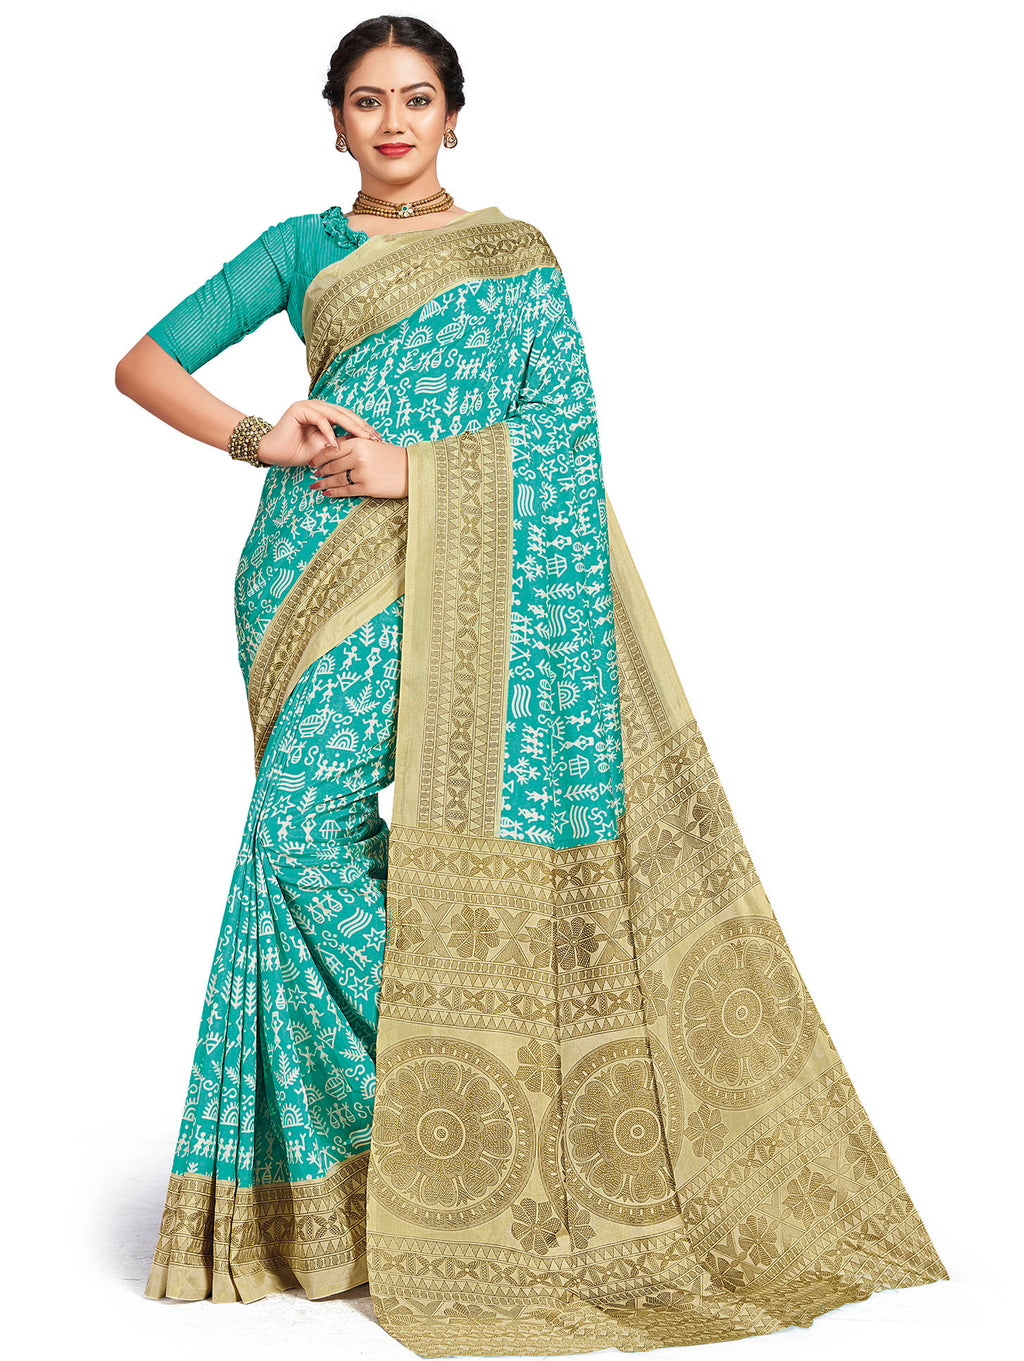 Aqua Blue Color Crepe Daily Wear Printed Sarees NYF-7801